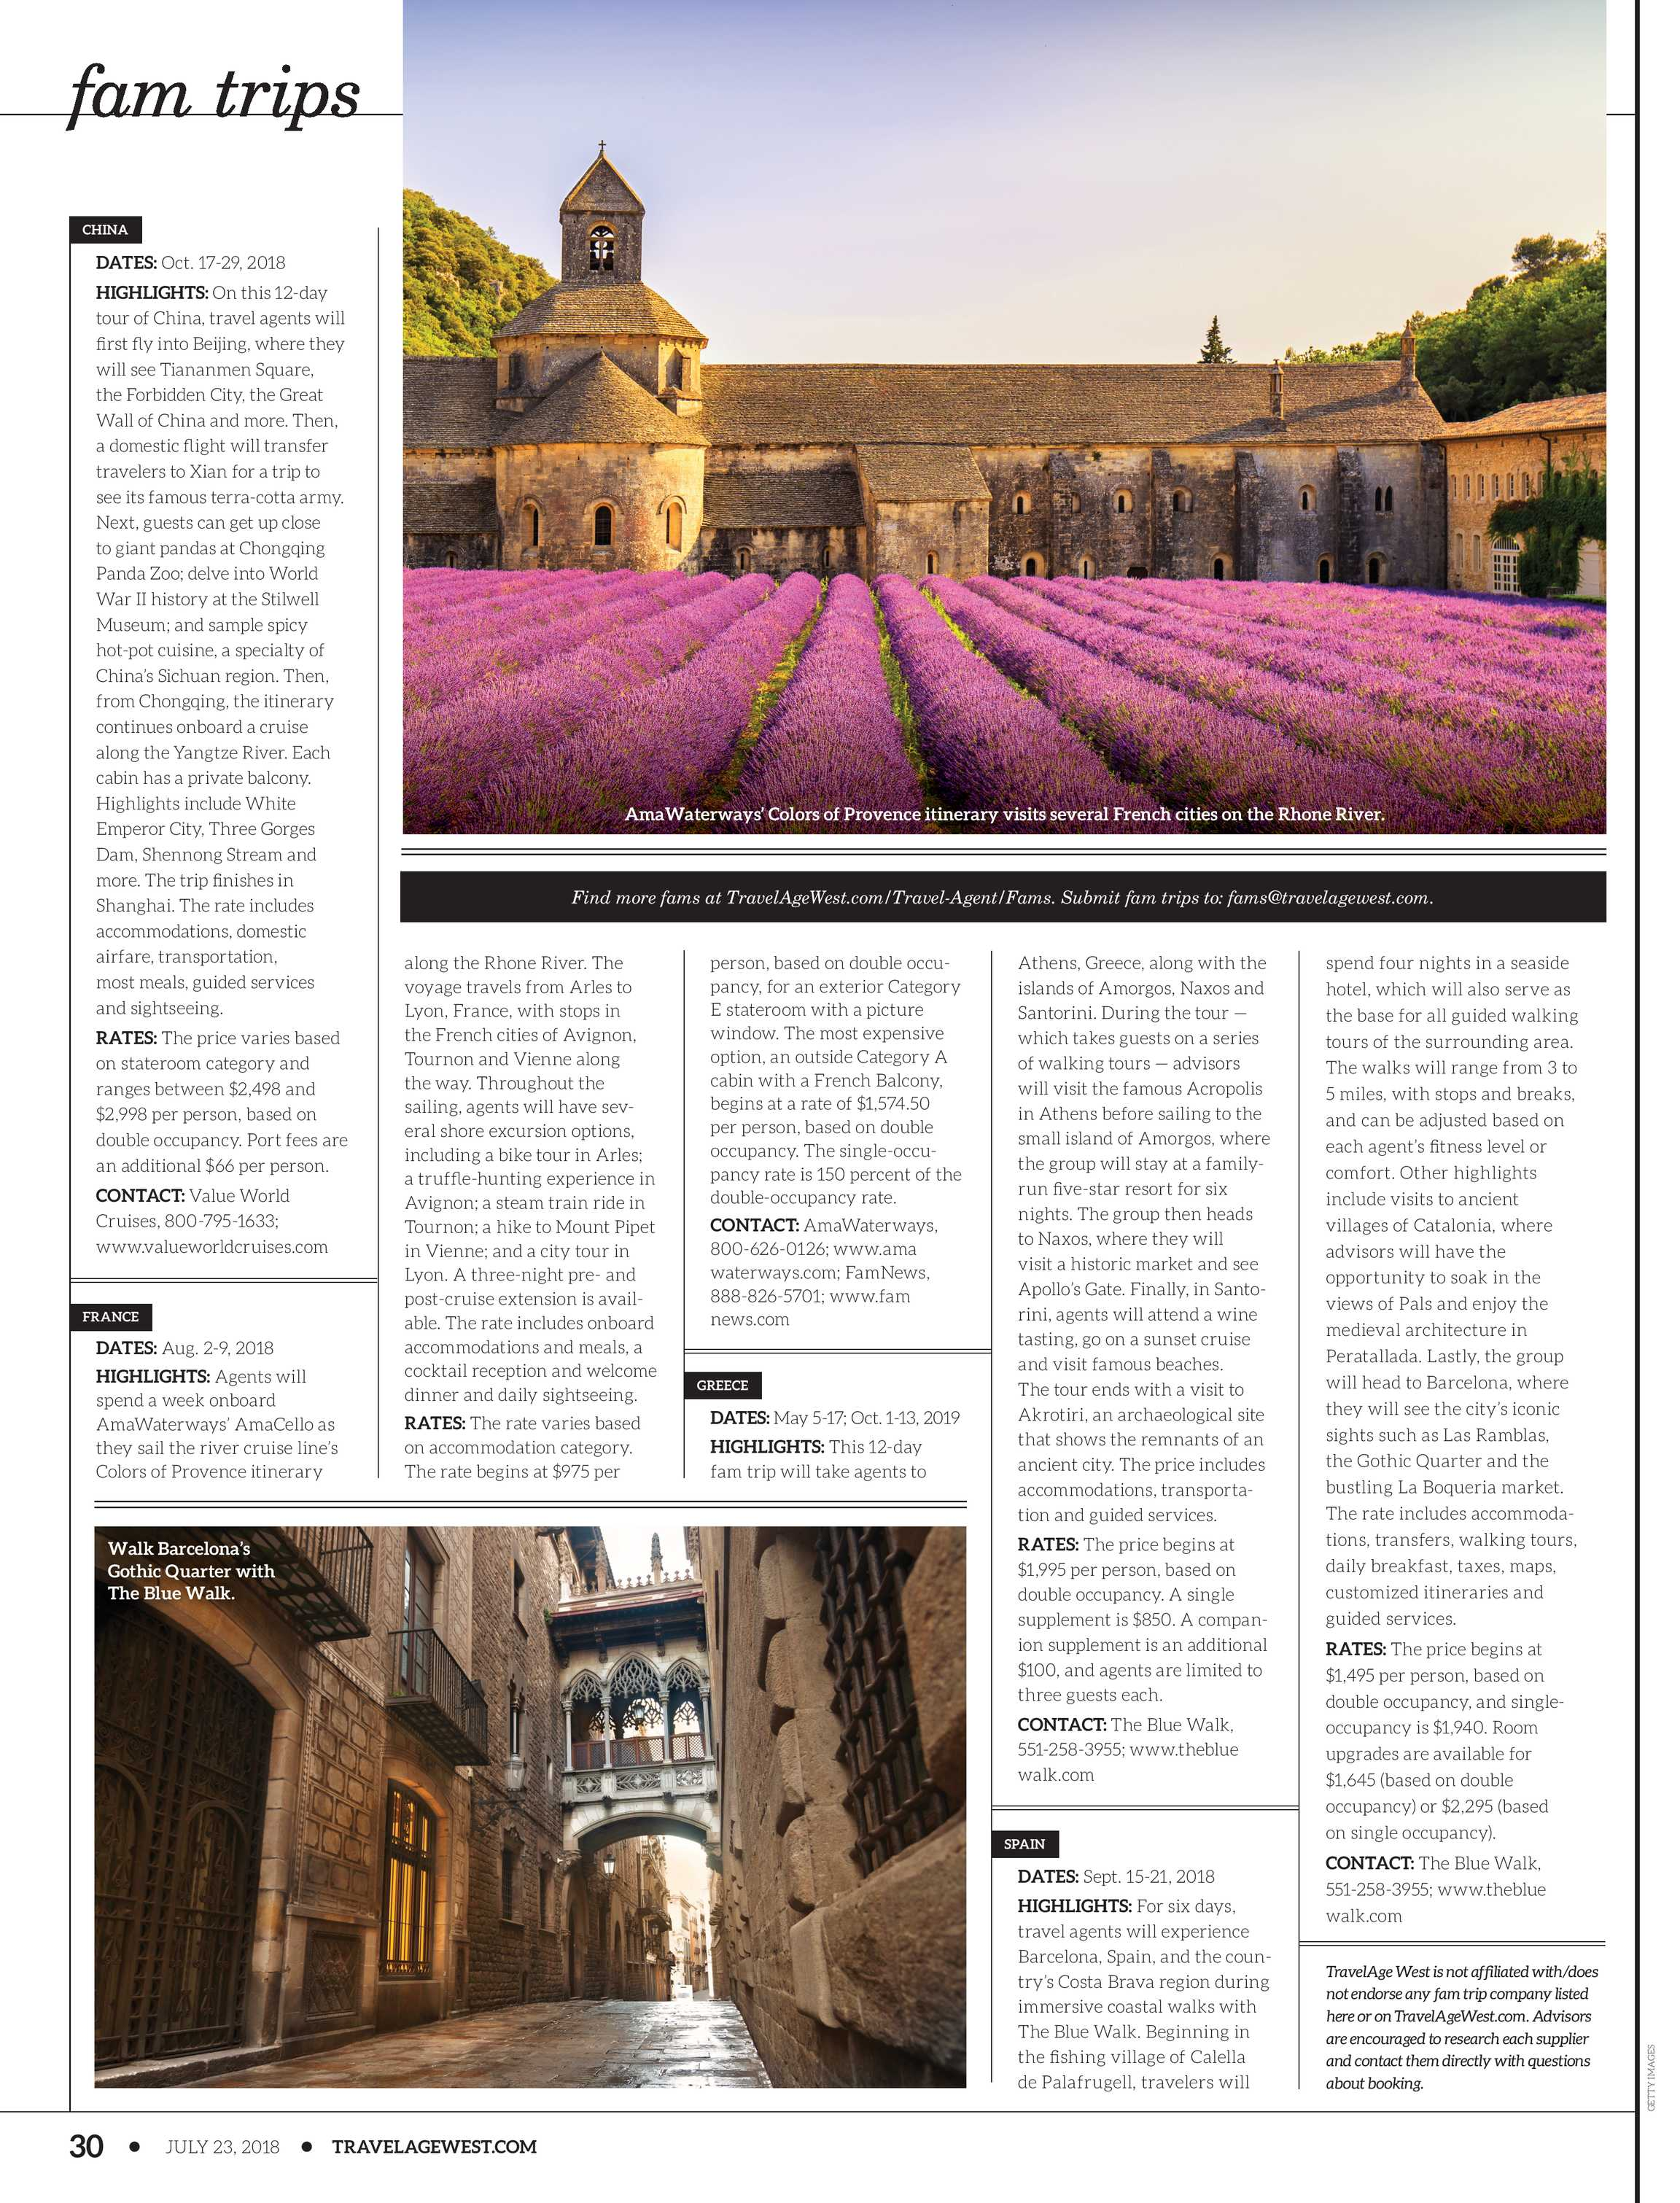 Travel Age West - July 23, 2018 - page 30